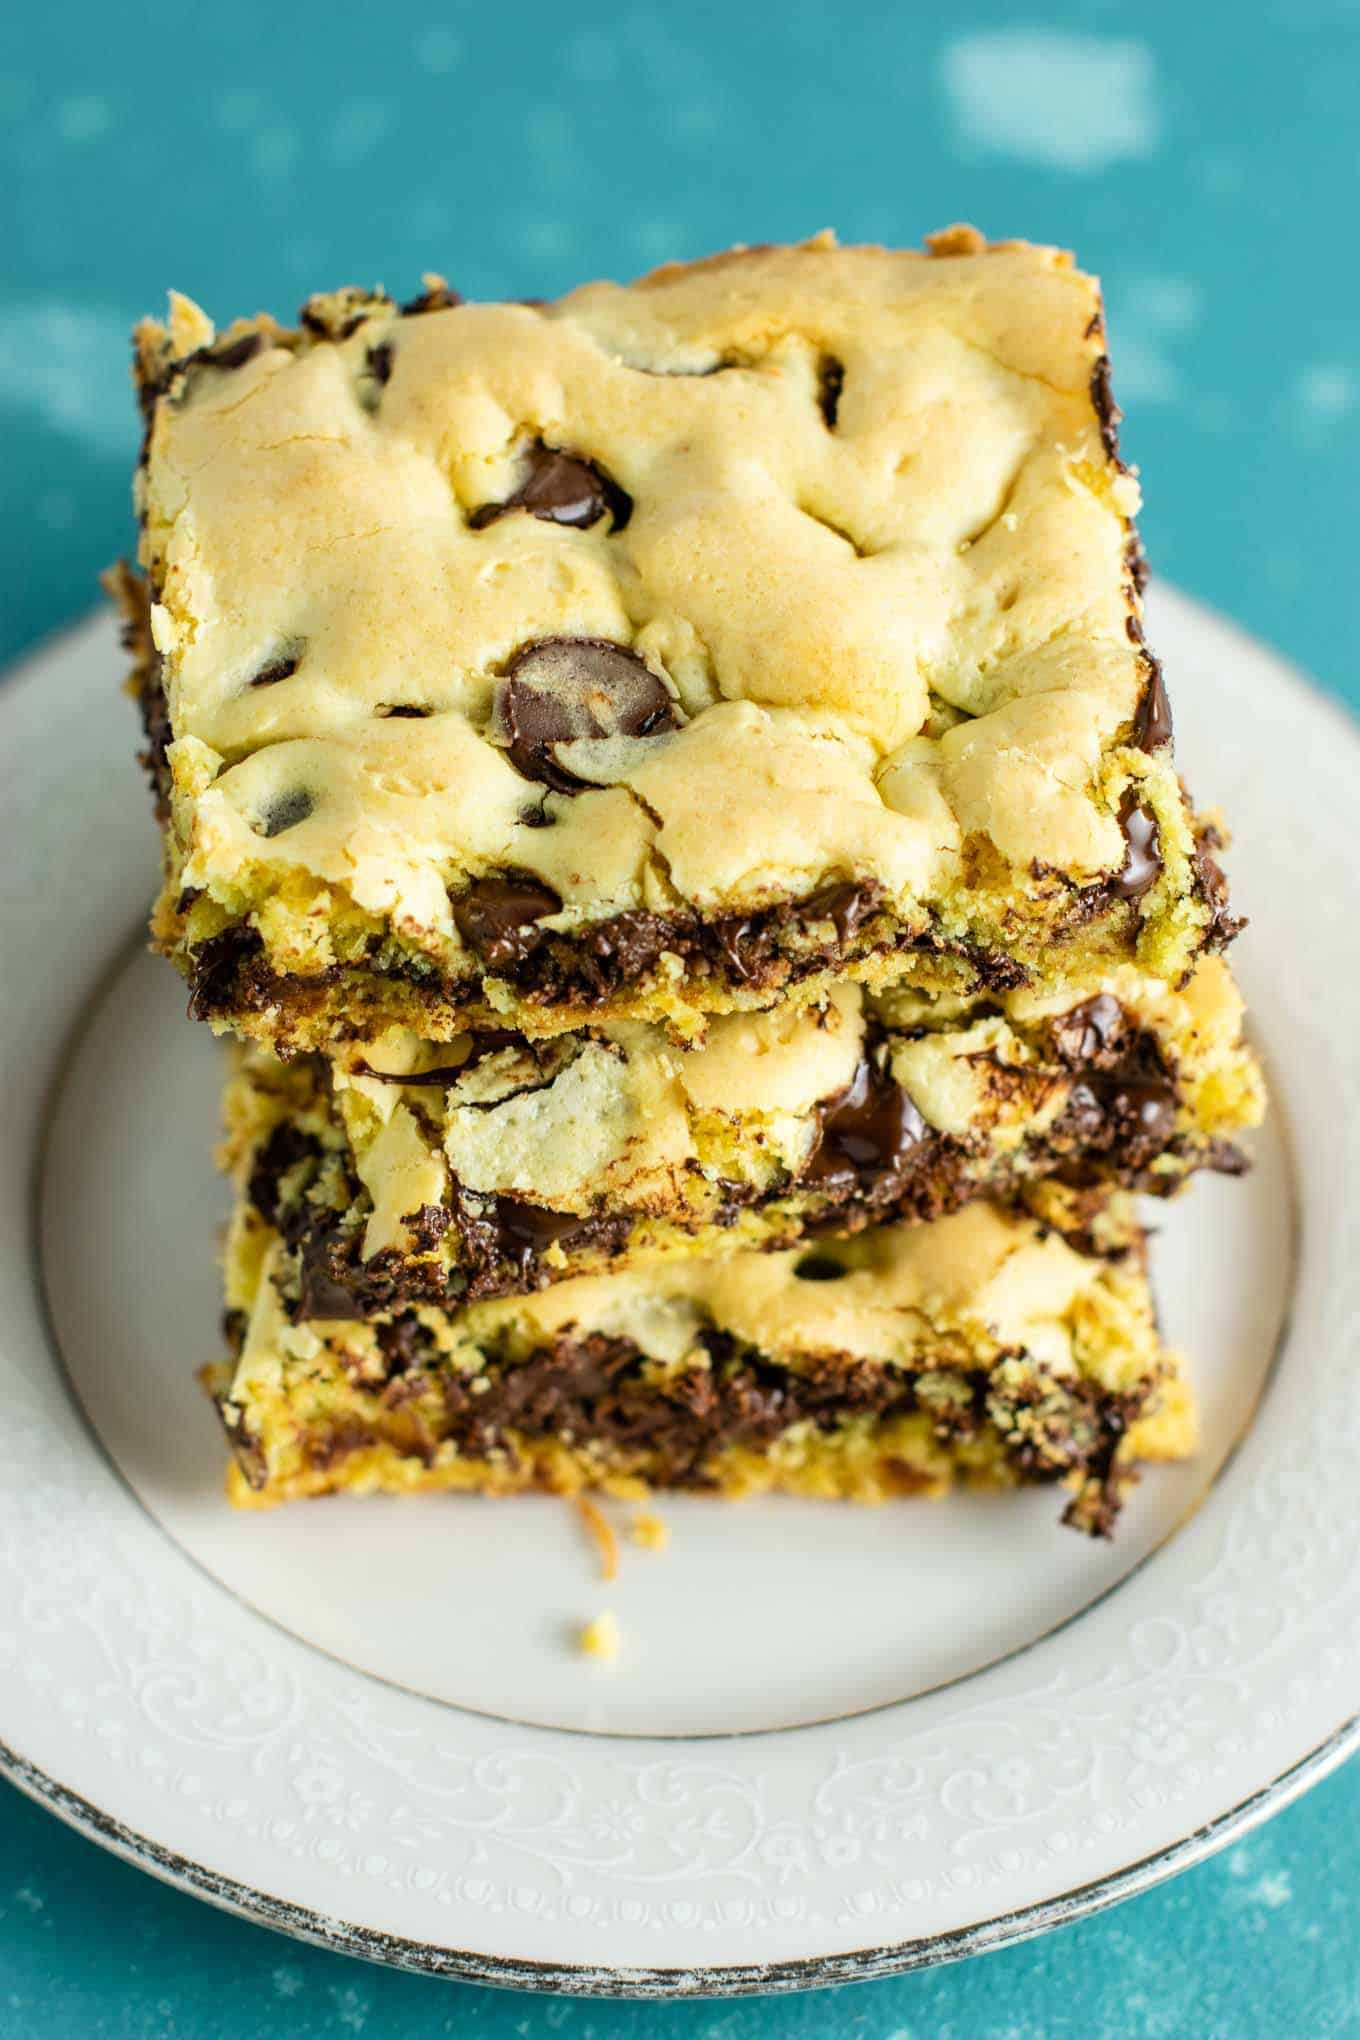 Cake Mix Cookie Bars Make Chocolate Chip Cookie Bars With Cake Mix